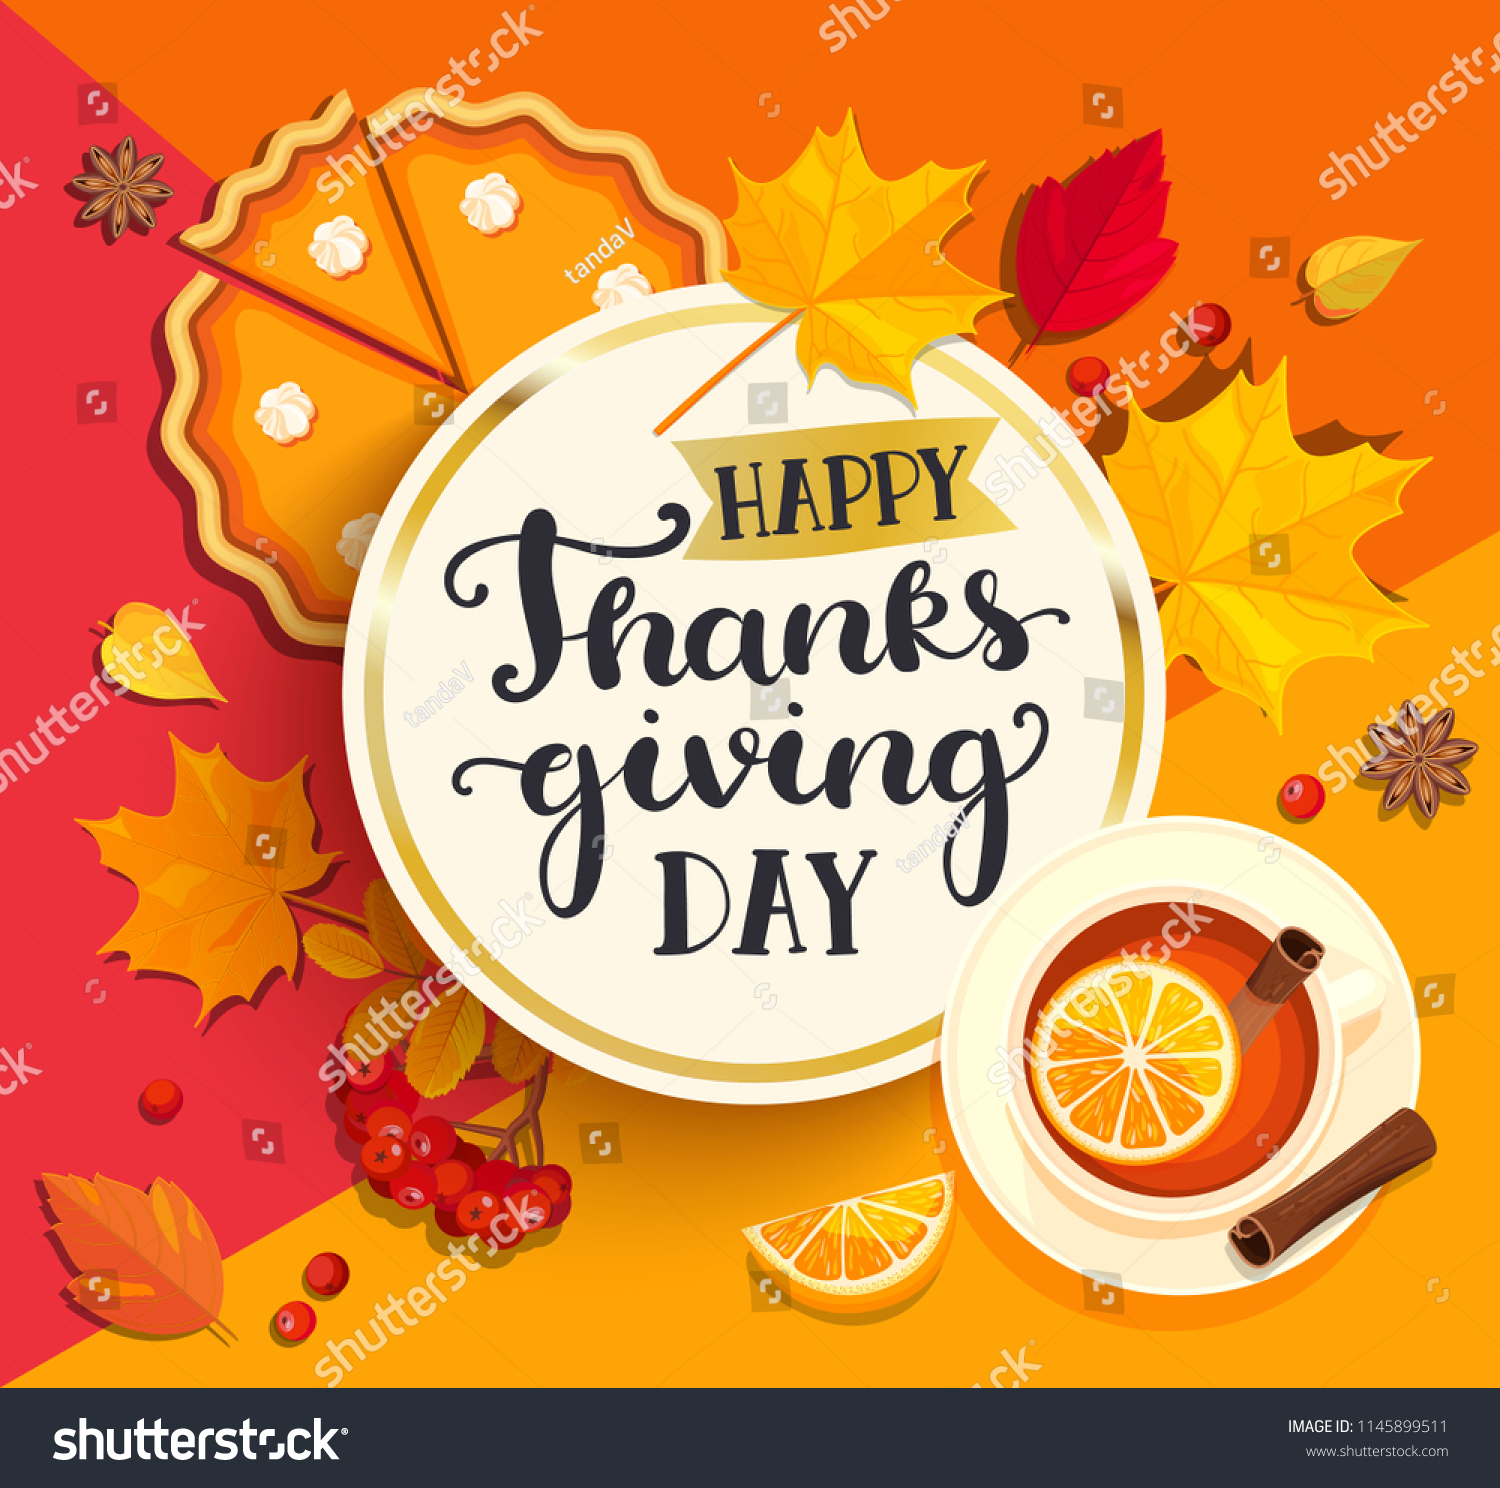 Happy Thanksgiving Day Lettering Gold Circle Stock Illustration